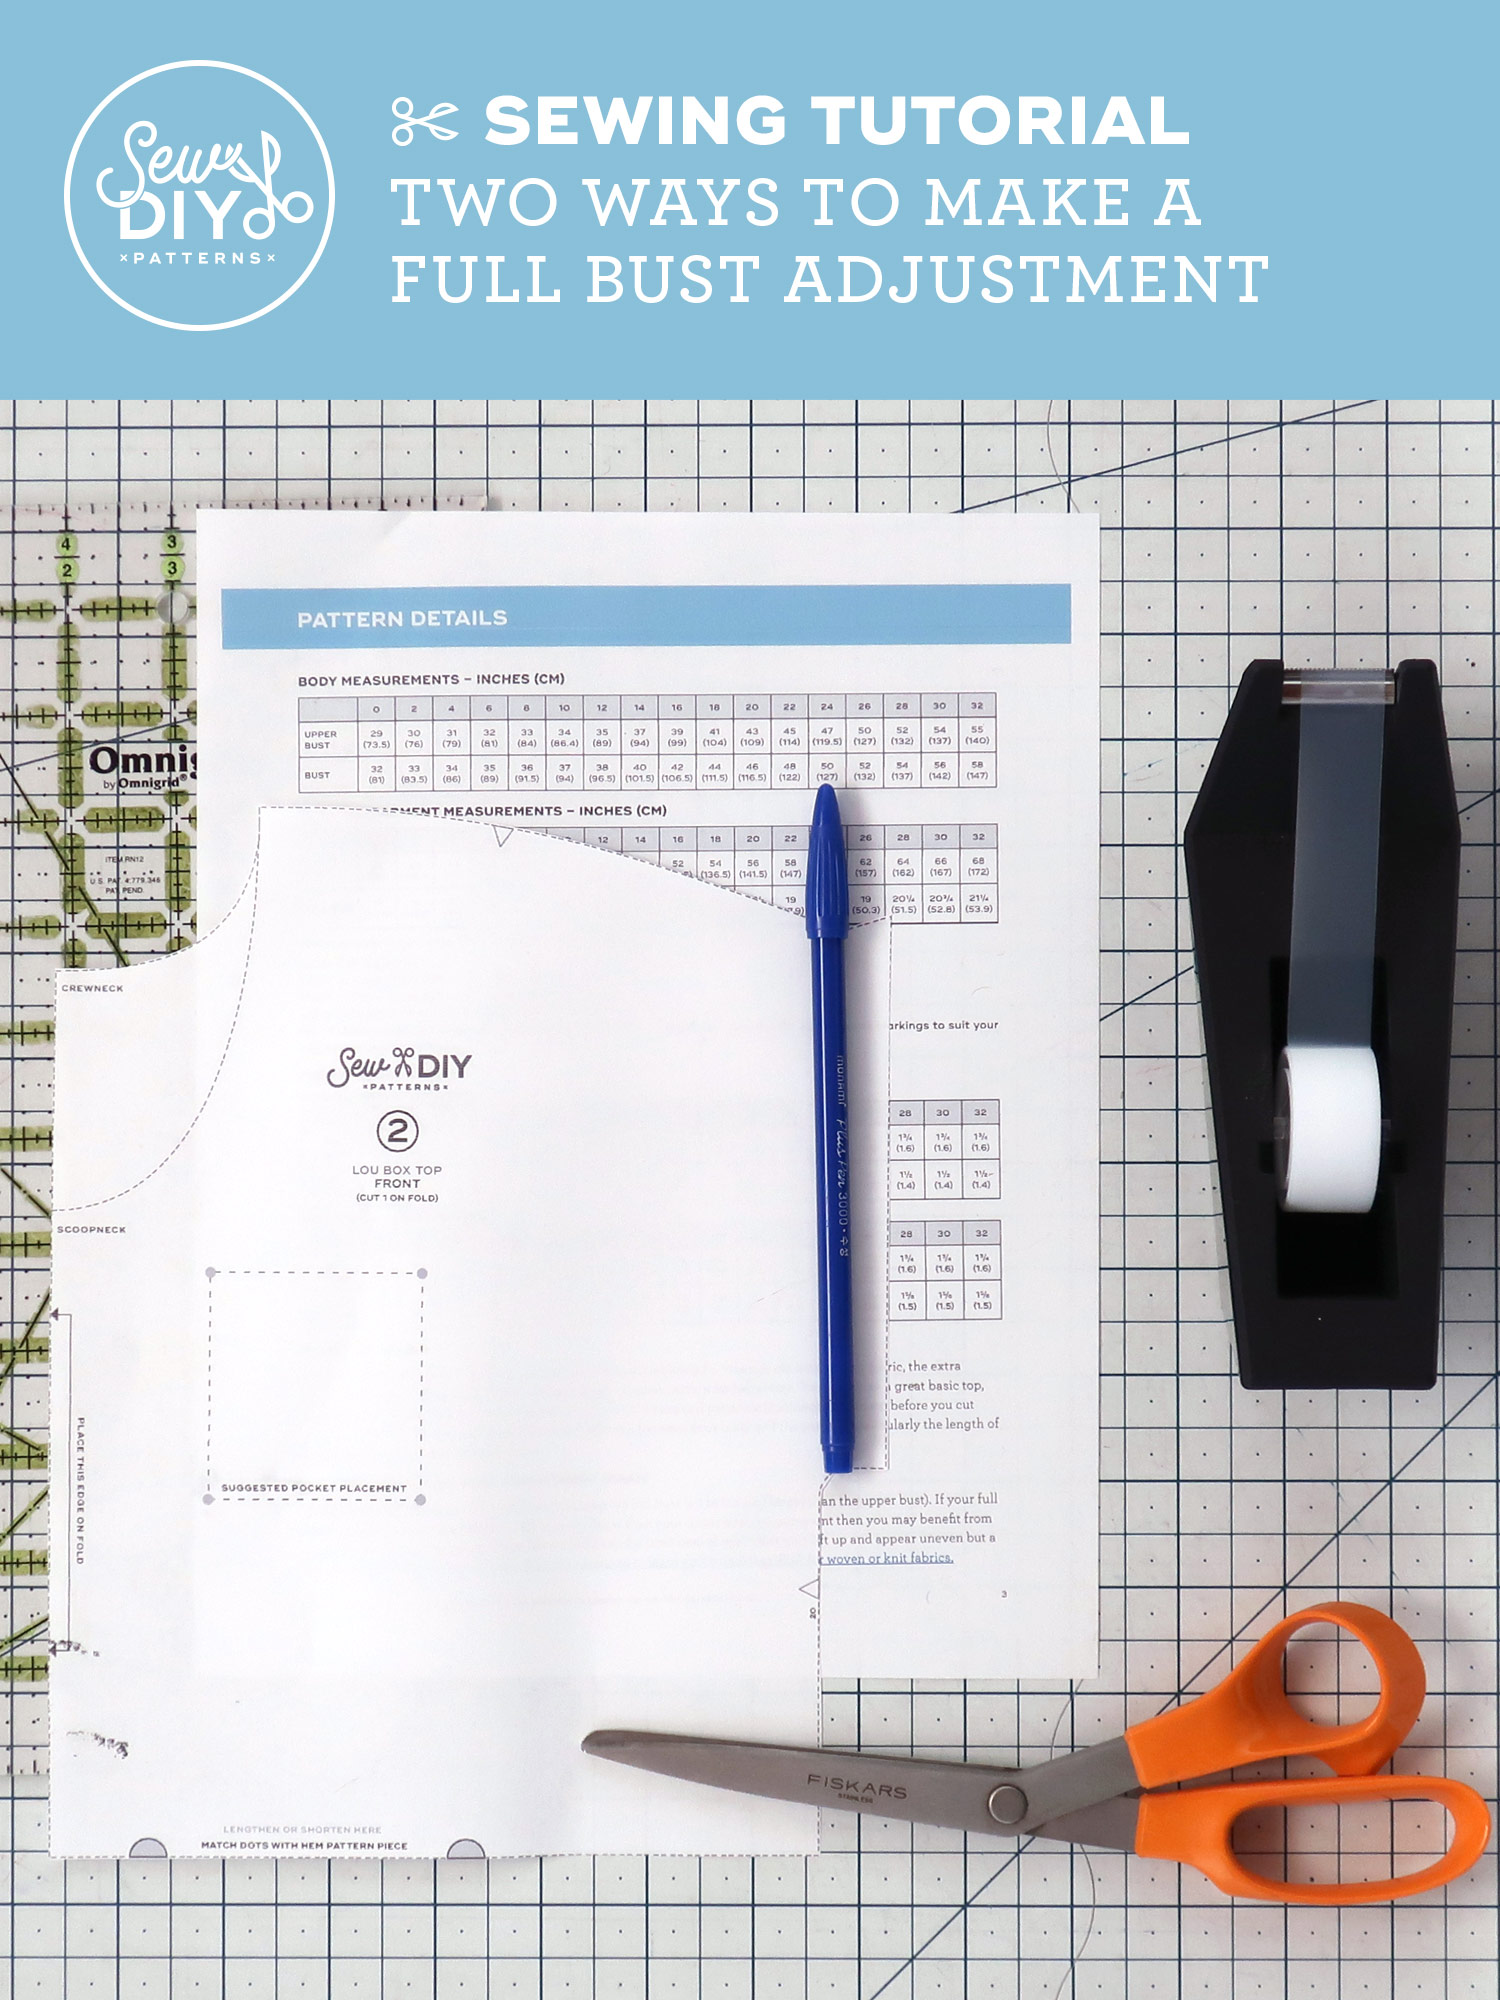 Two Ways to Make a Full Bust Adjustment for the Lou Box Top by Sew DIY